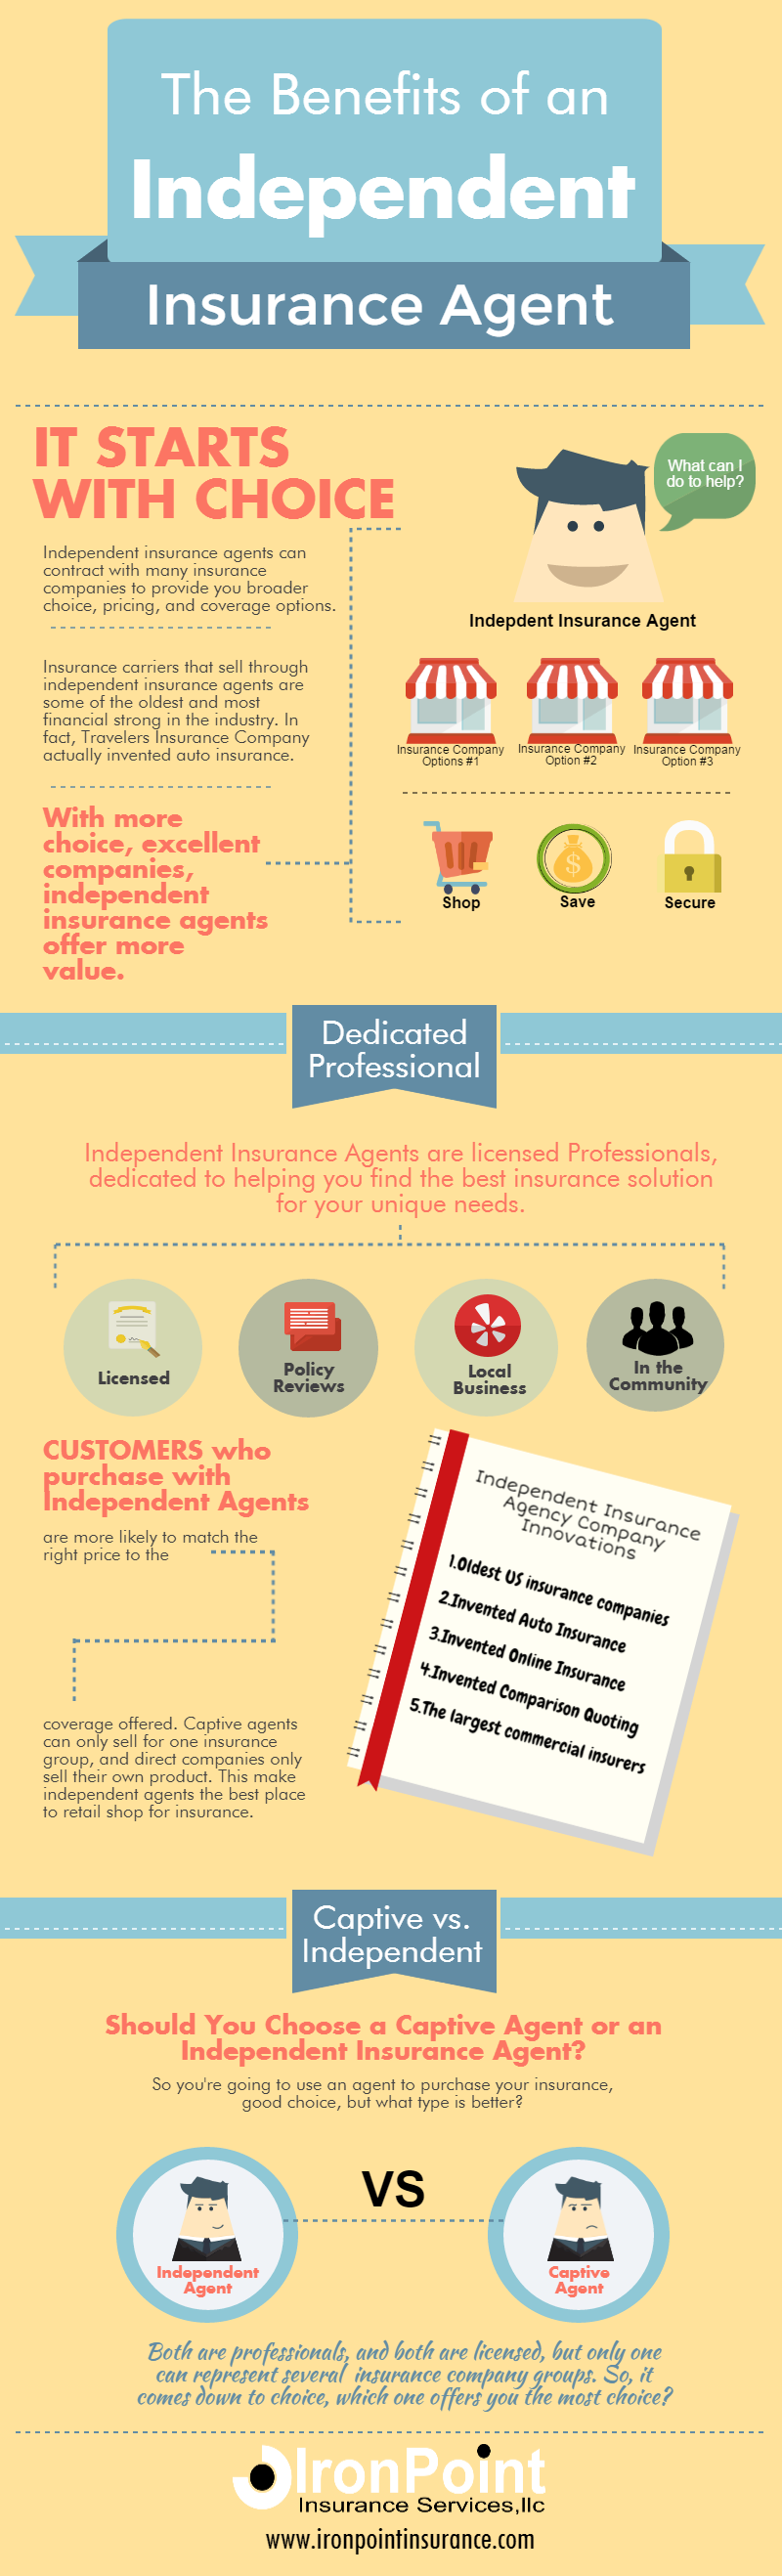 Benefits of an Independent Insurance Agent